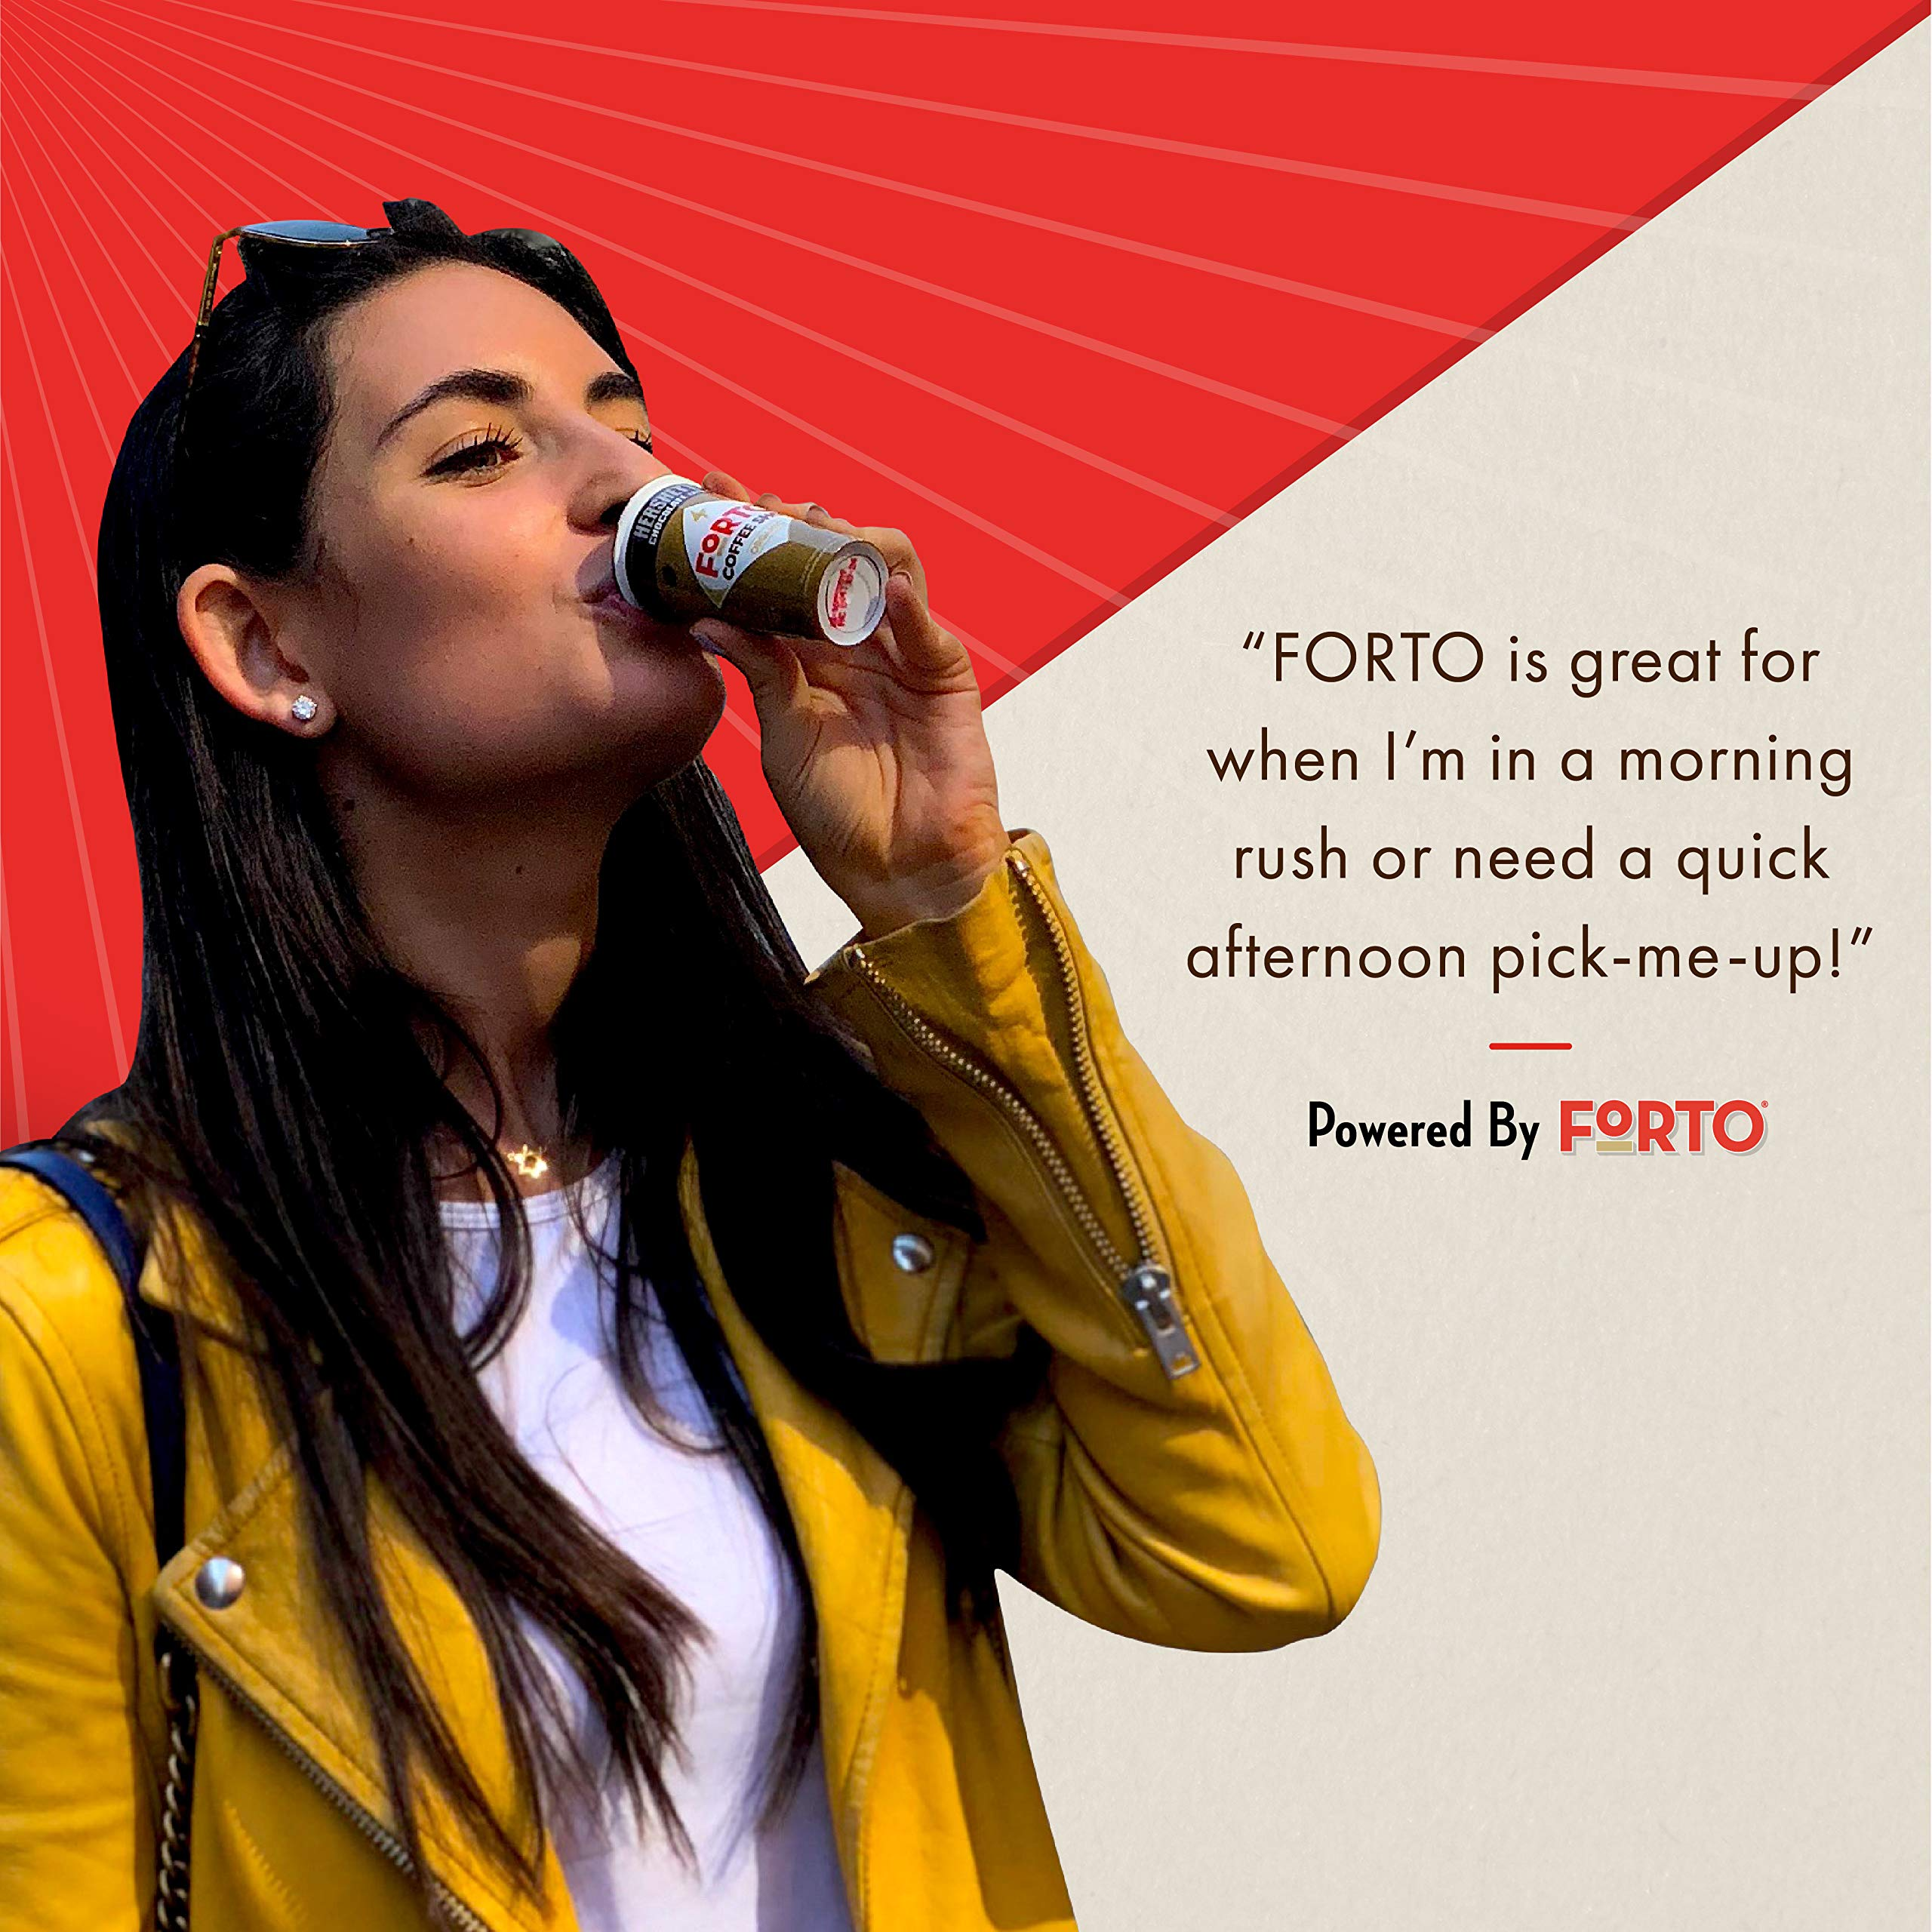 FORTO Coffee Shots - 200mg Caffeine, Variety Pack, High Caffeine Cold Brew Coffee, Bottled Fast Coffee Energy Boost, 12 Pack by FORTO